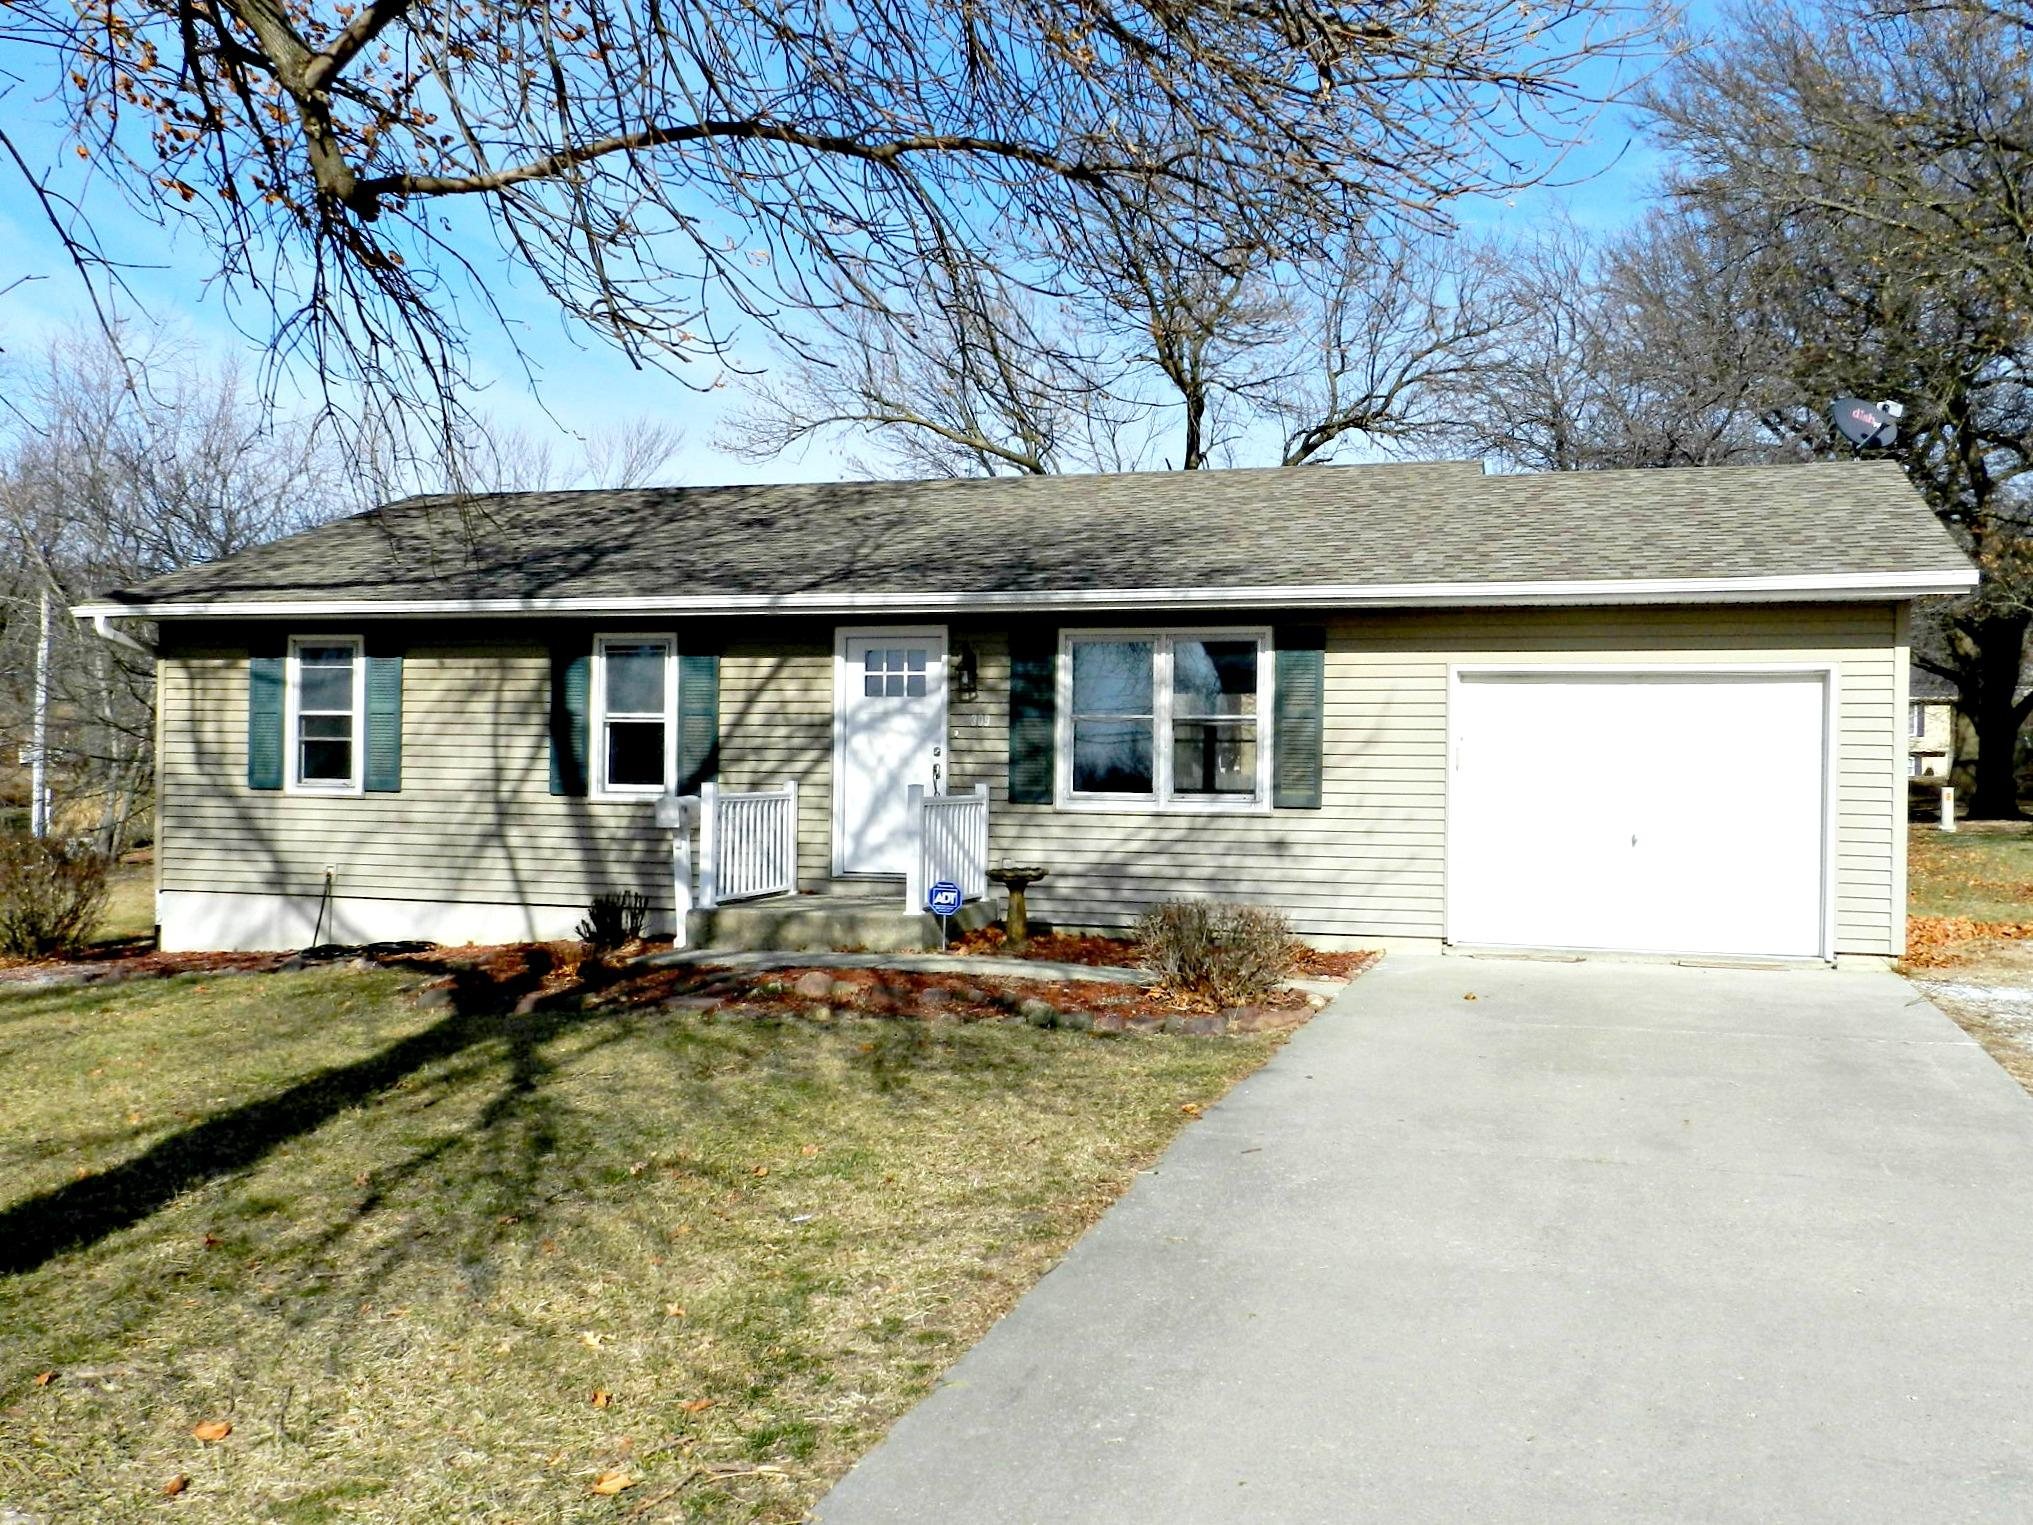 309 W SOUTH AVE, Maryville, Missouri 64468, 4 Bedrooms Bedrooms, ,2 BathroomsBathrooms,Residential,SOUTH,4632